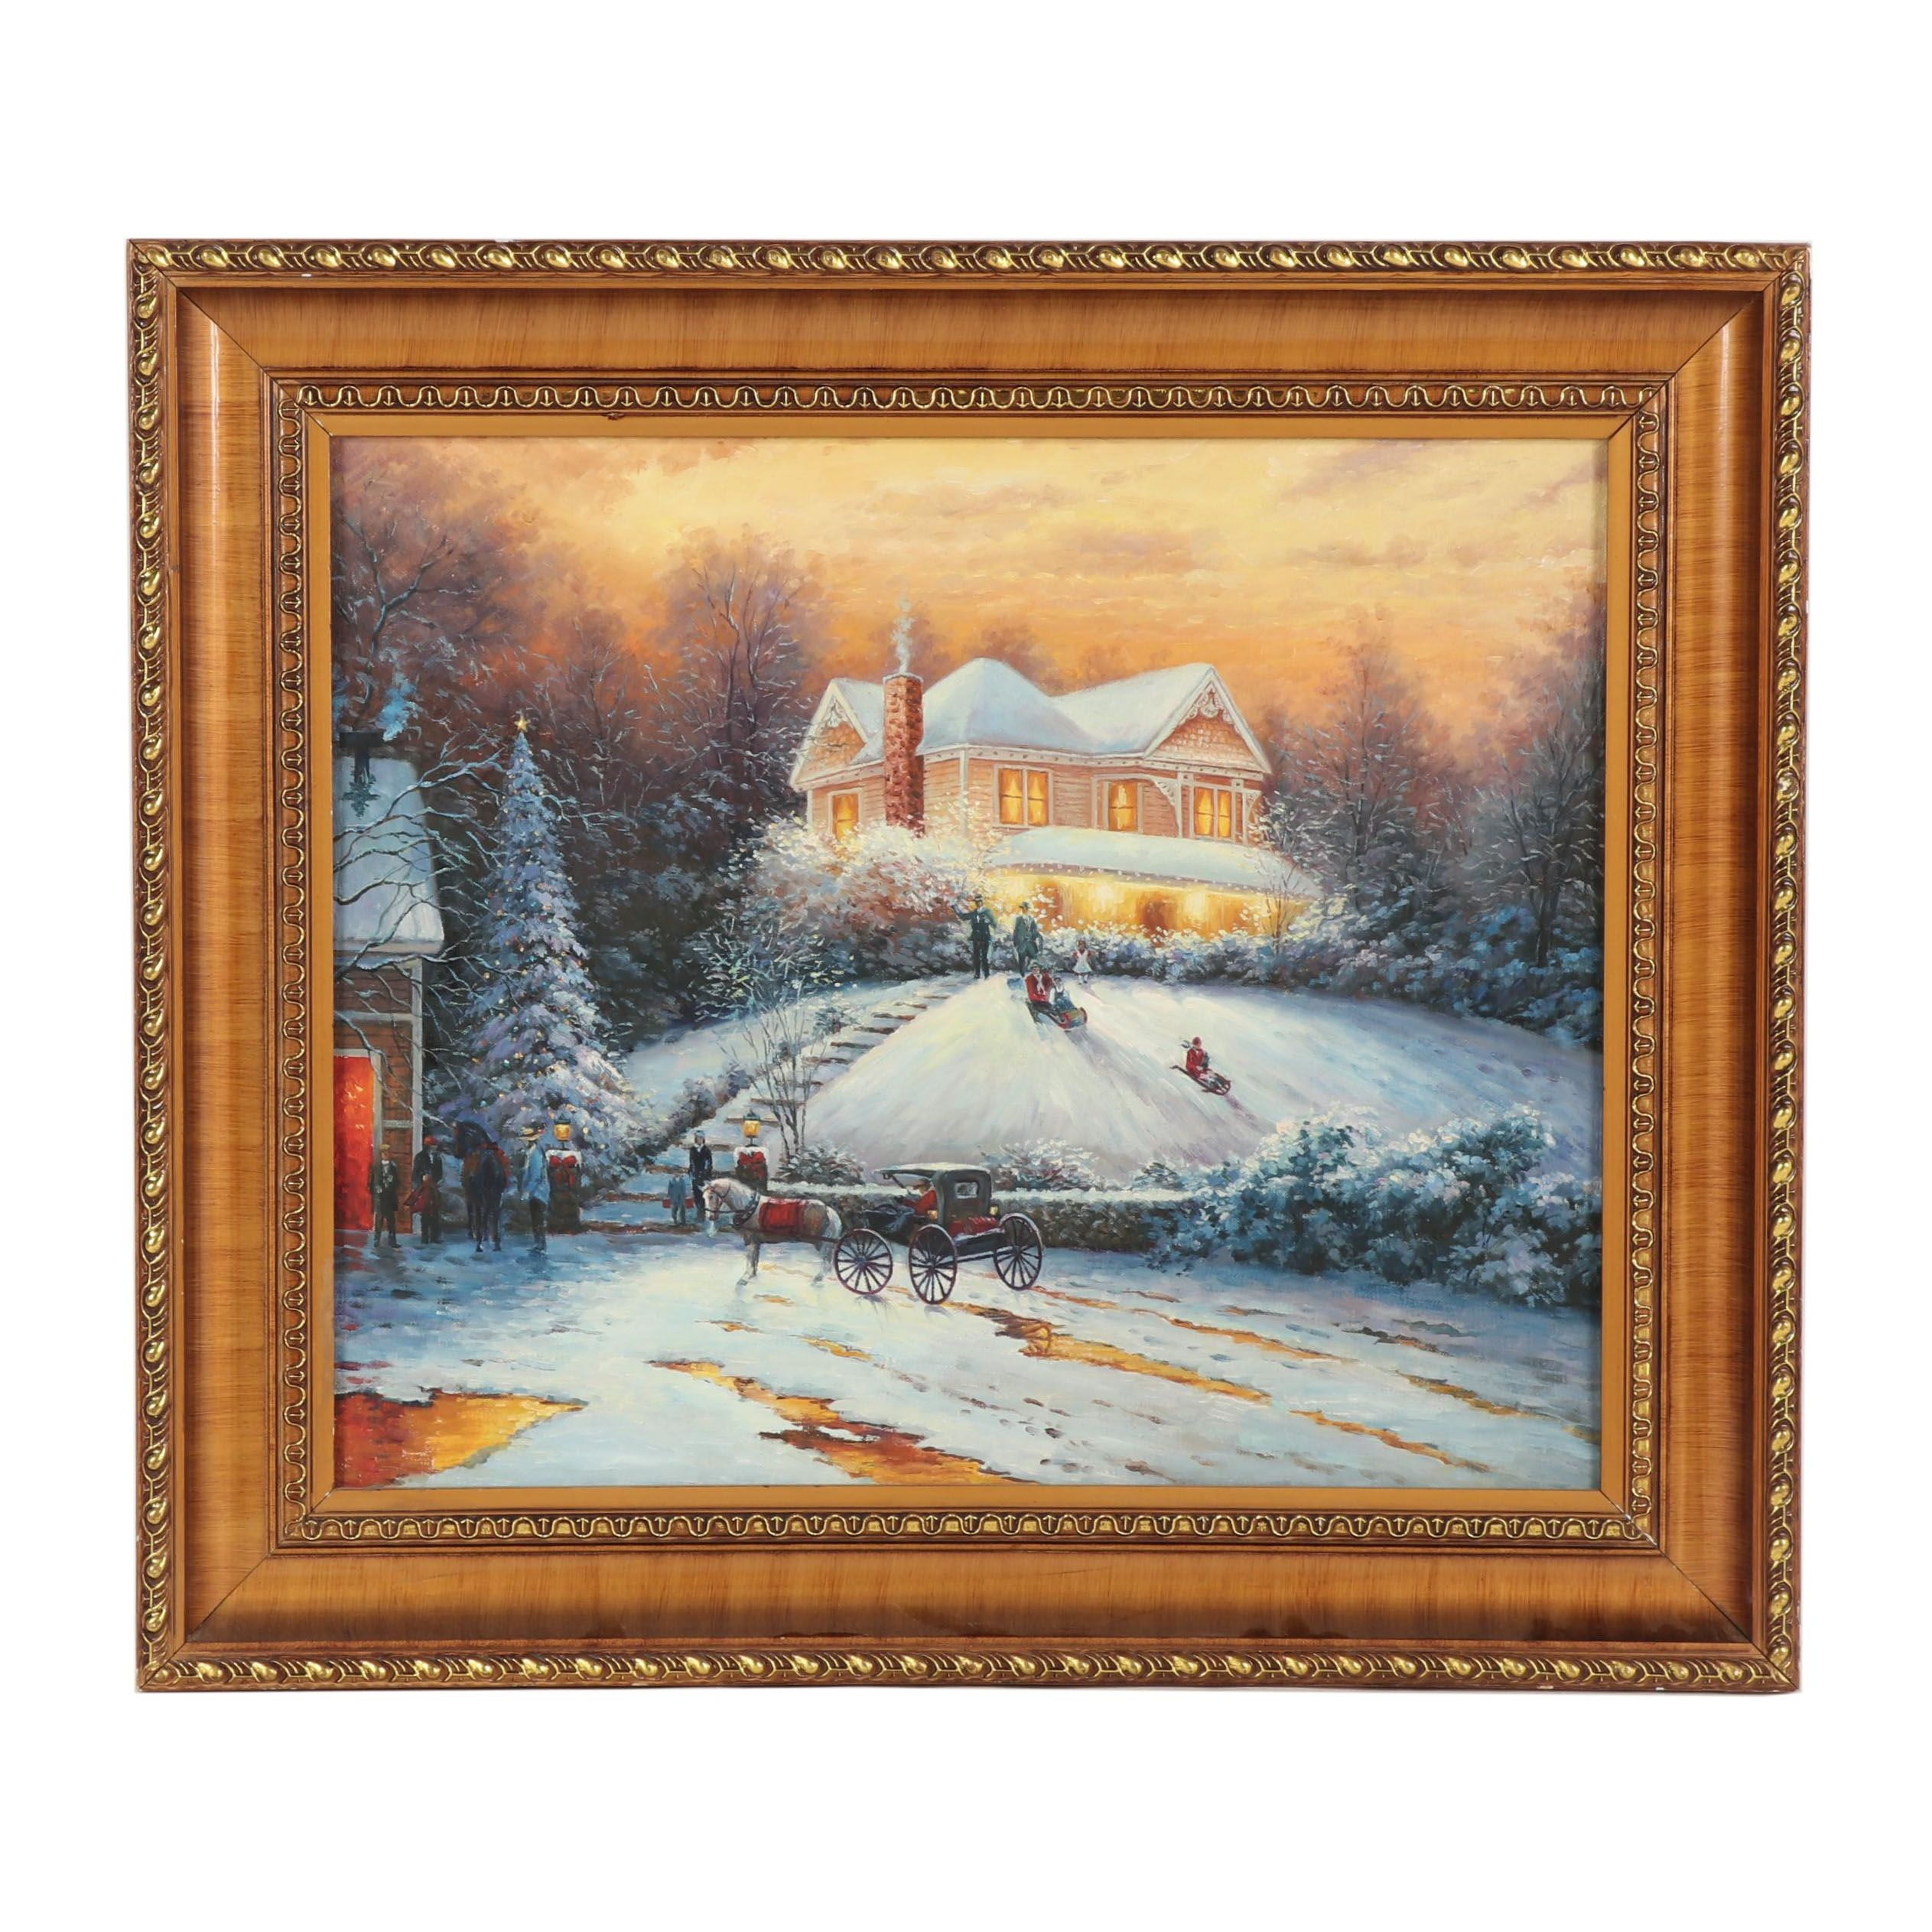 "Copy Oil Painting after Thomas Kinkade ""Victorian Christmas II"""